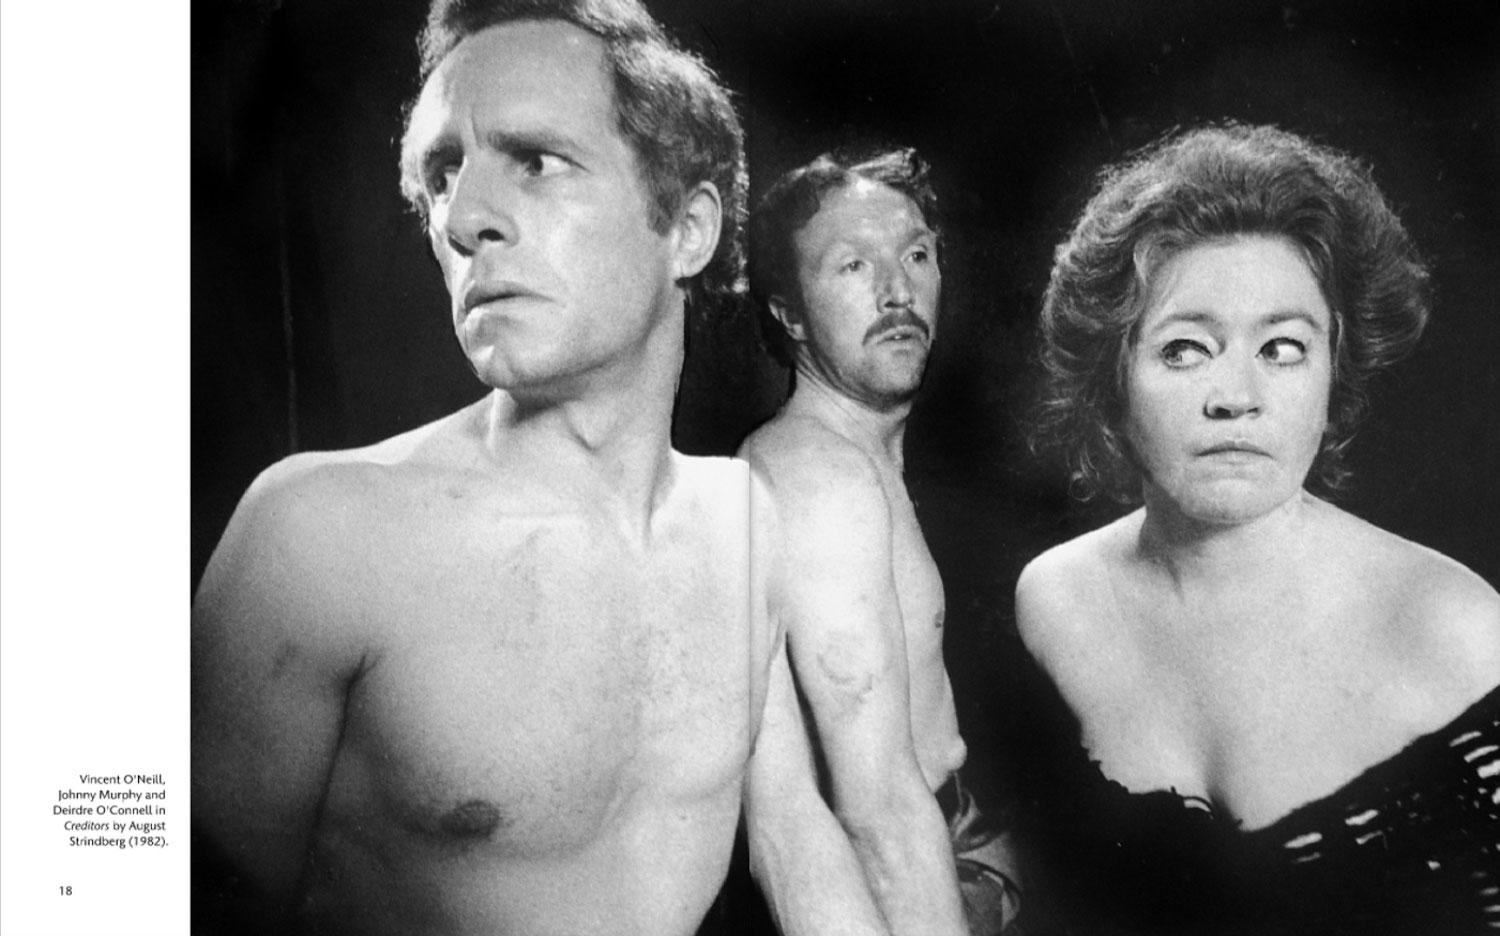 black and white portrait of 3 actors in 1970s review looking furtive